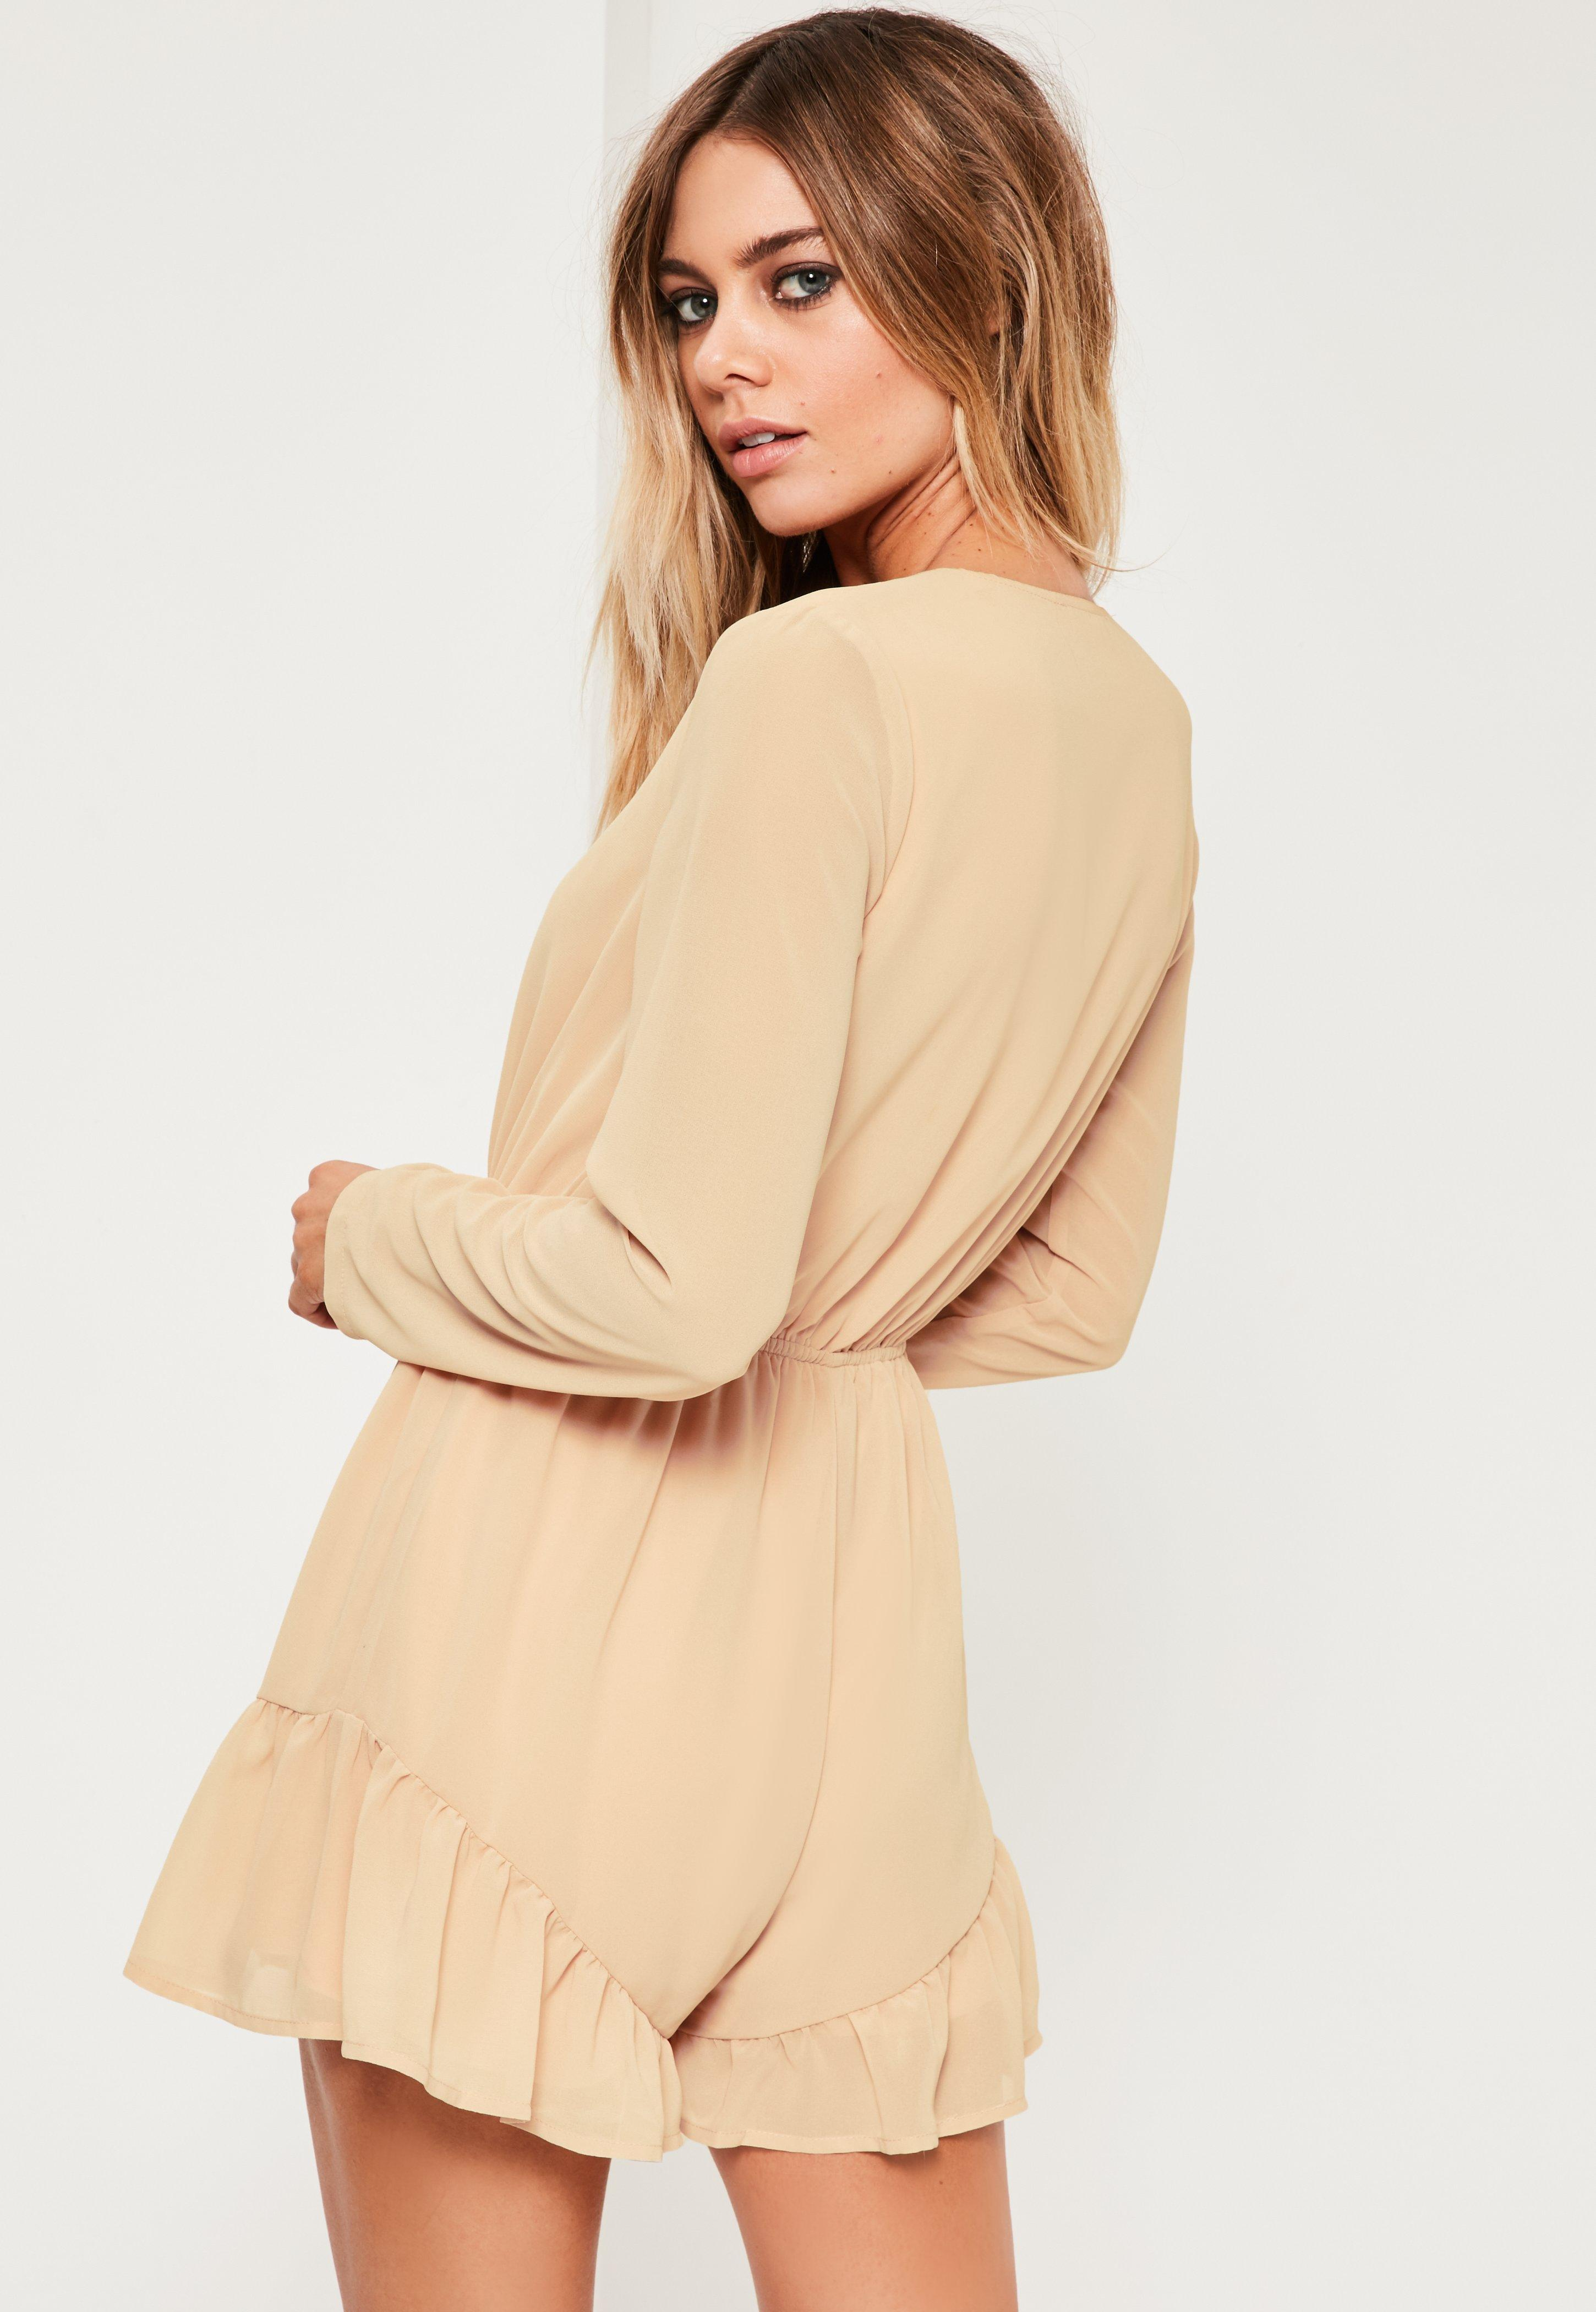 52abe0ebb12 Lyst - Missguided Nude Crepe Long Sleeve Flutter Short Playsuit in Blue